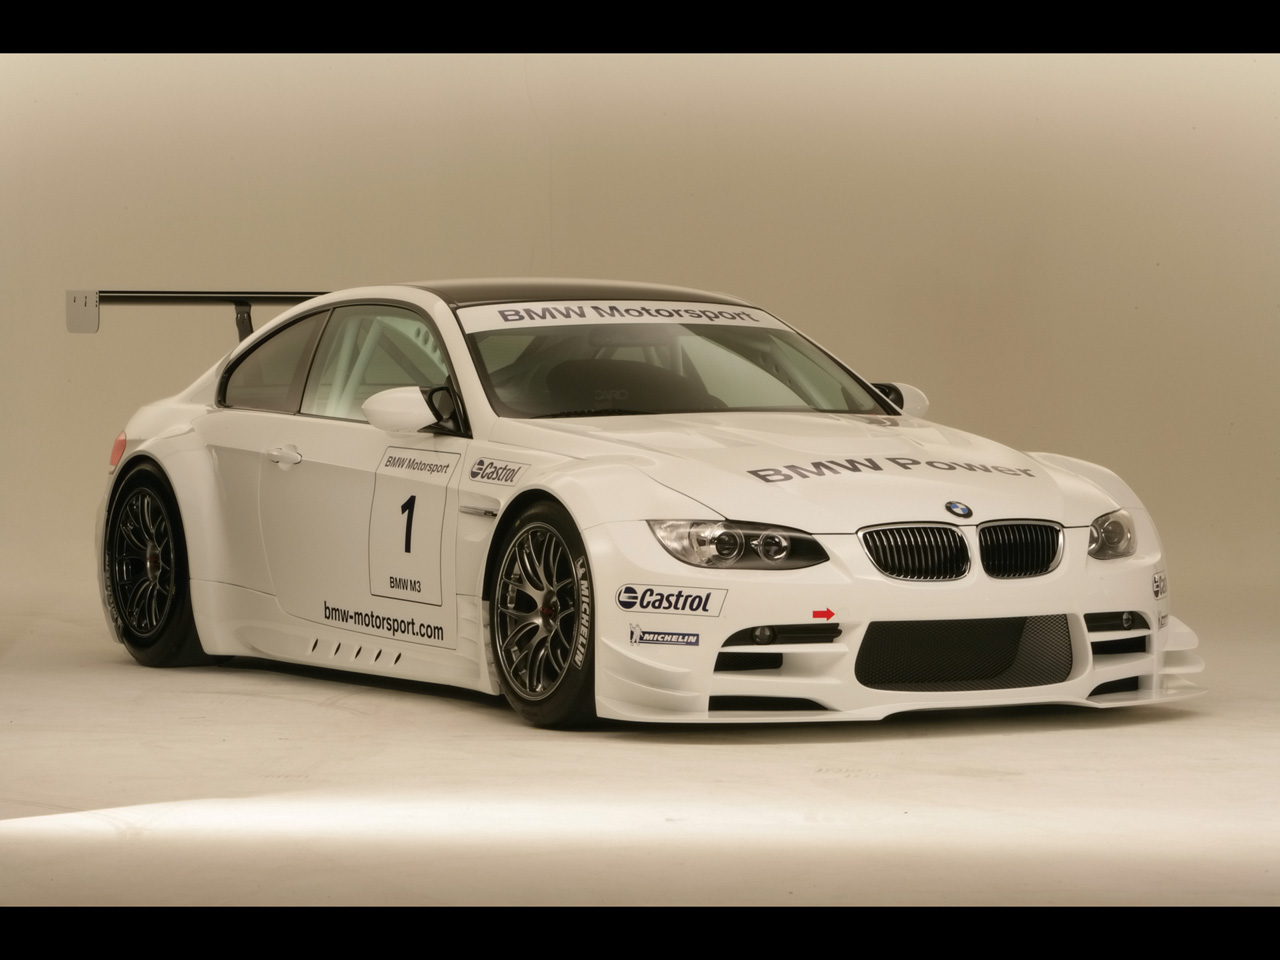 BMW m3 Car-Wallpapers